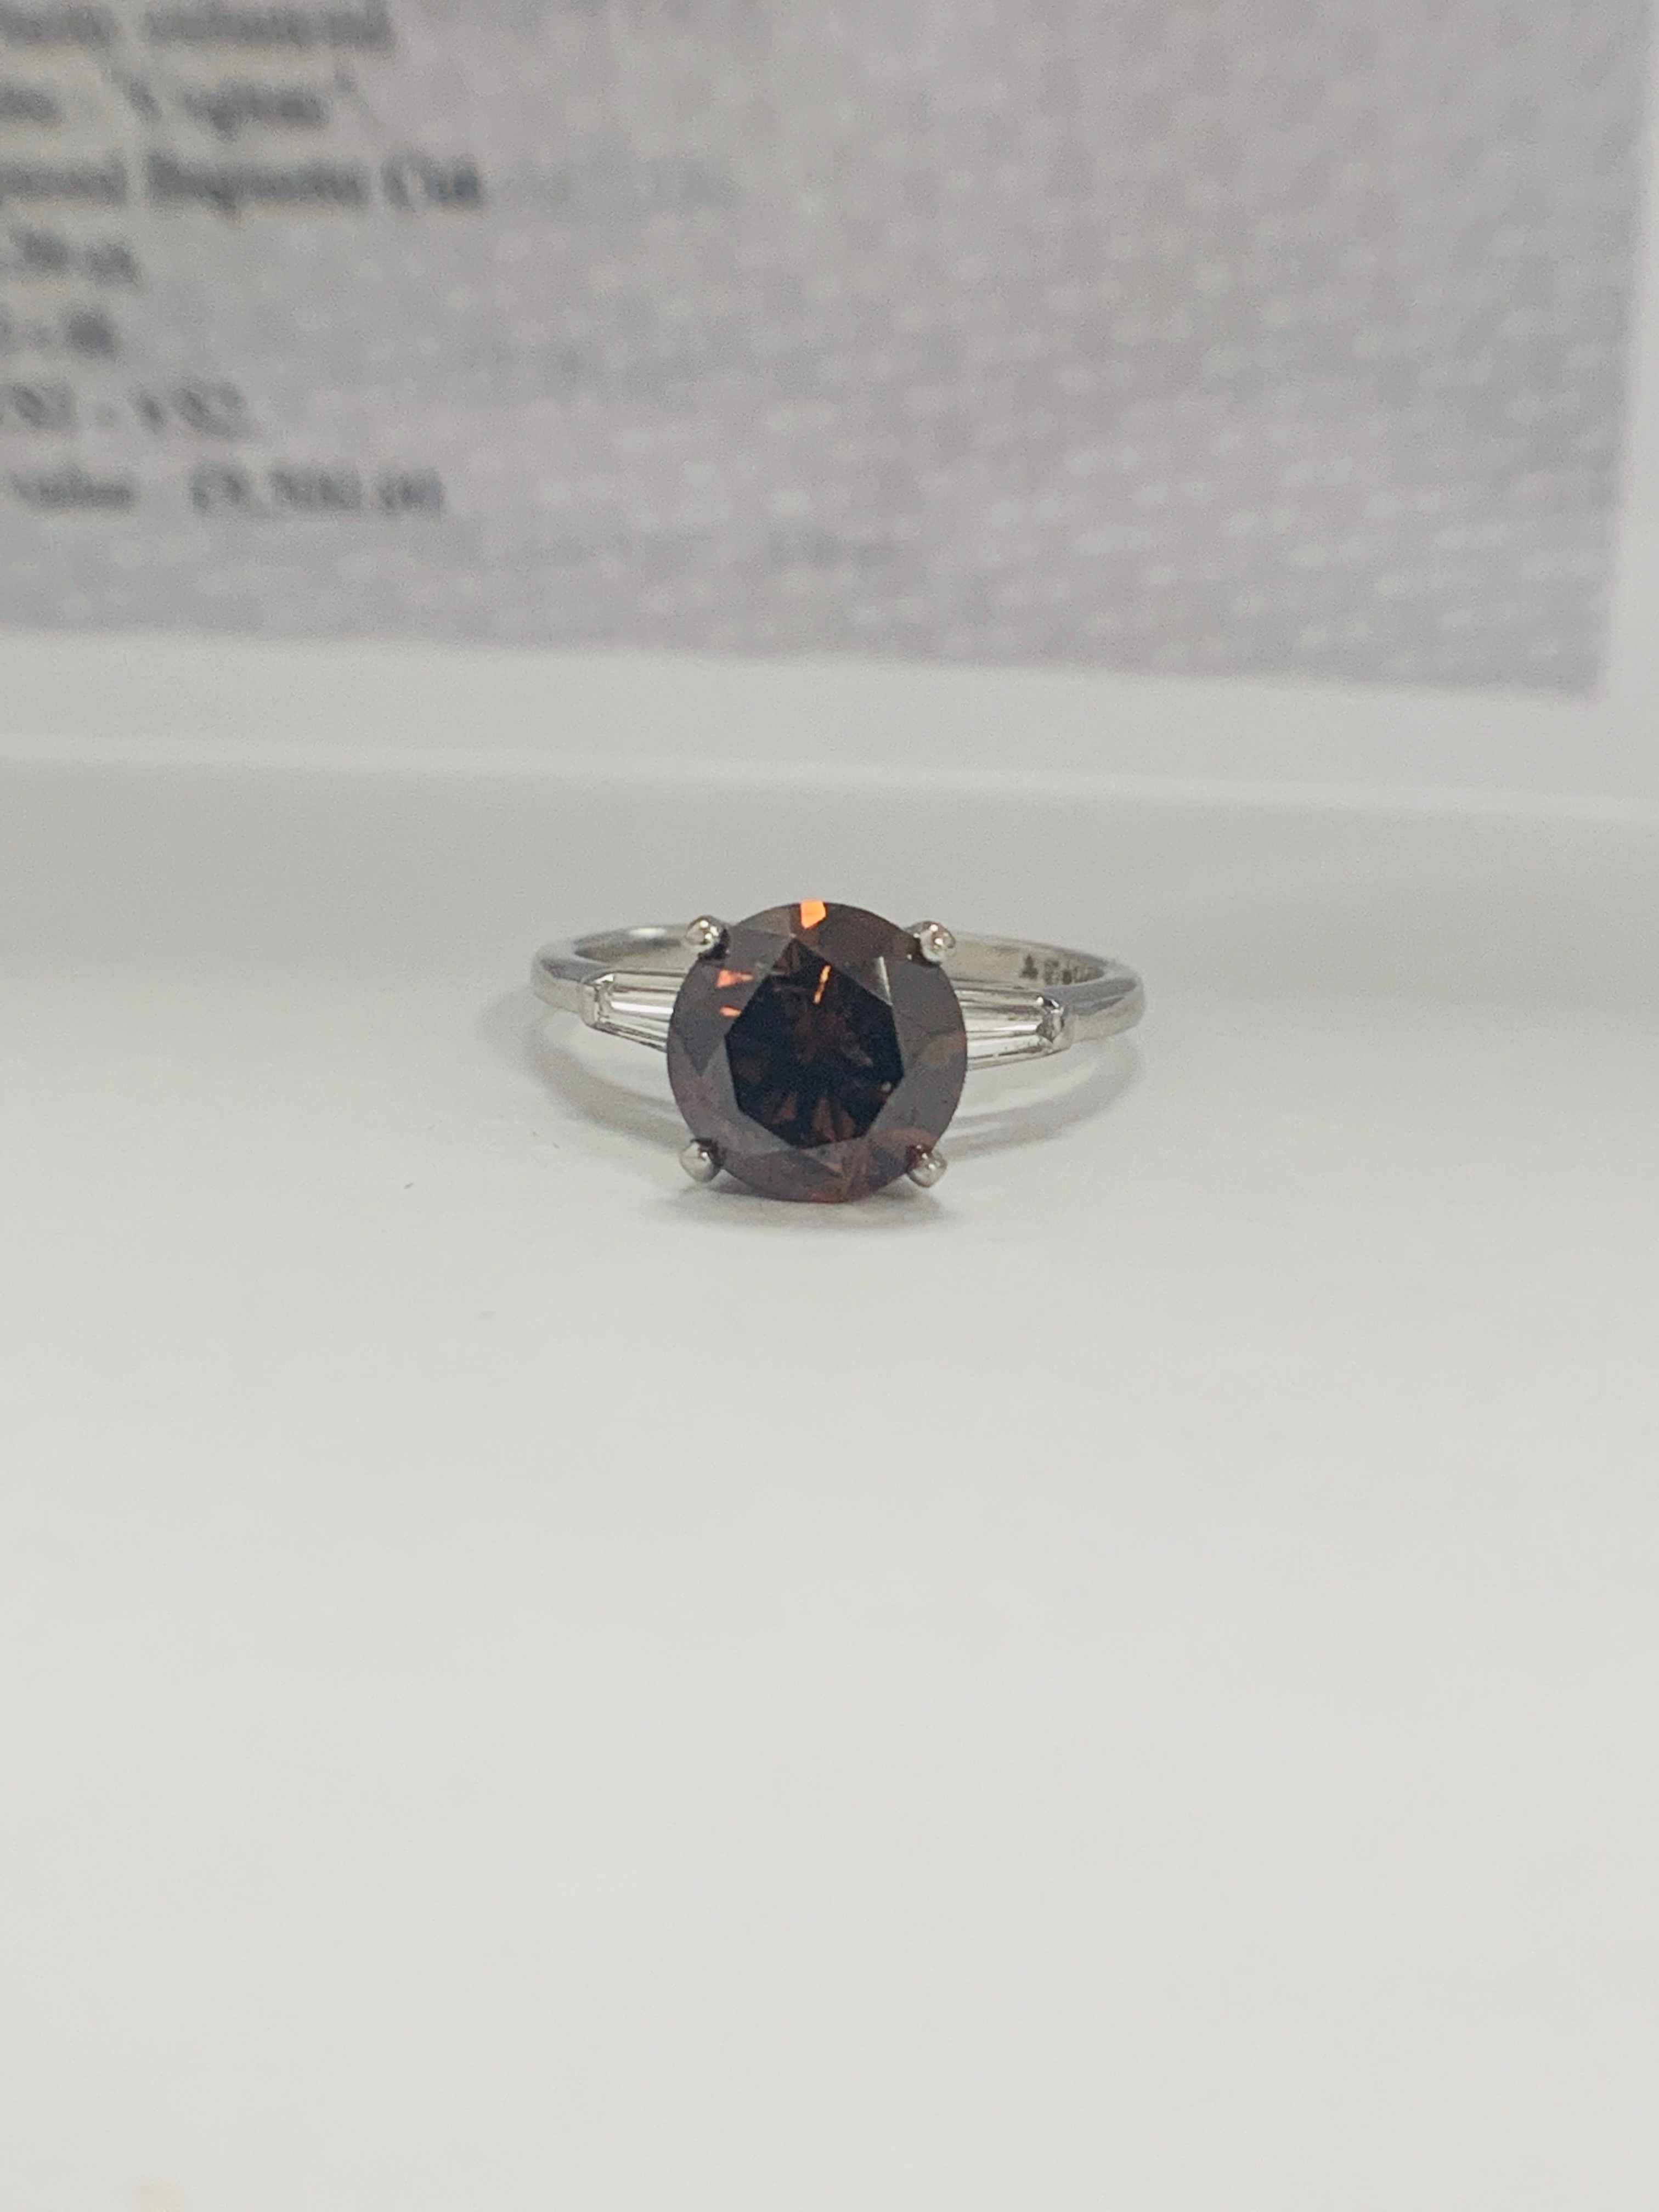 Platinum Diamond ring featuring centre, round brilliant cut, deep orangey brown Diamond (2.15ct) - Image 14 of 14